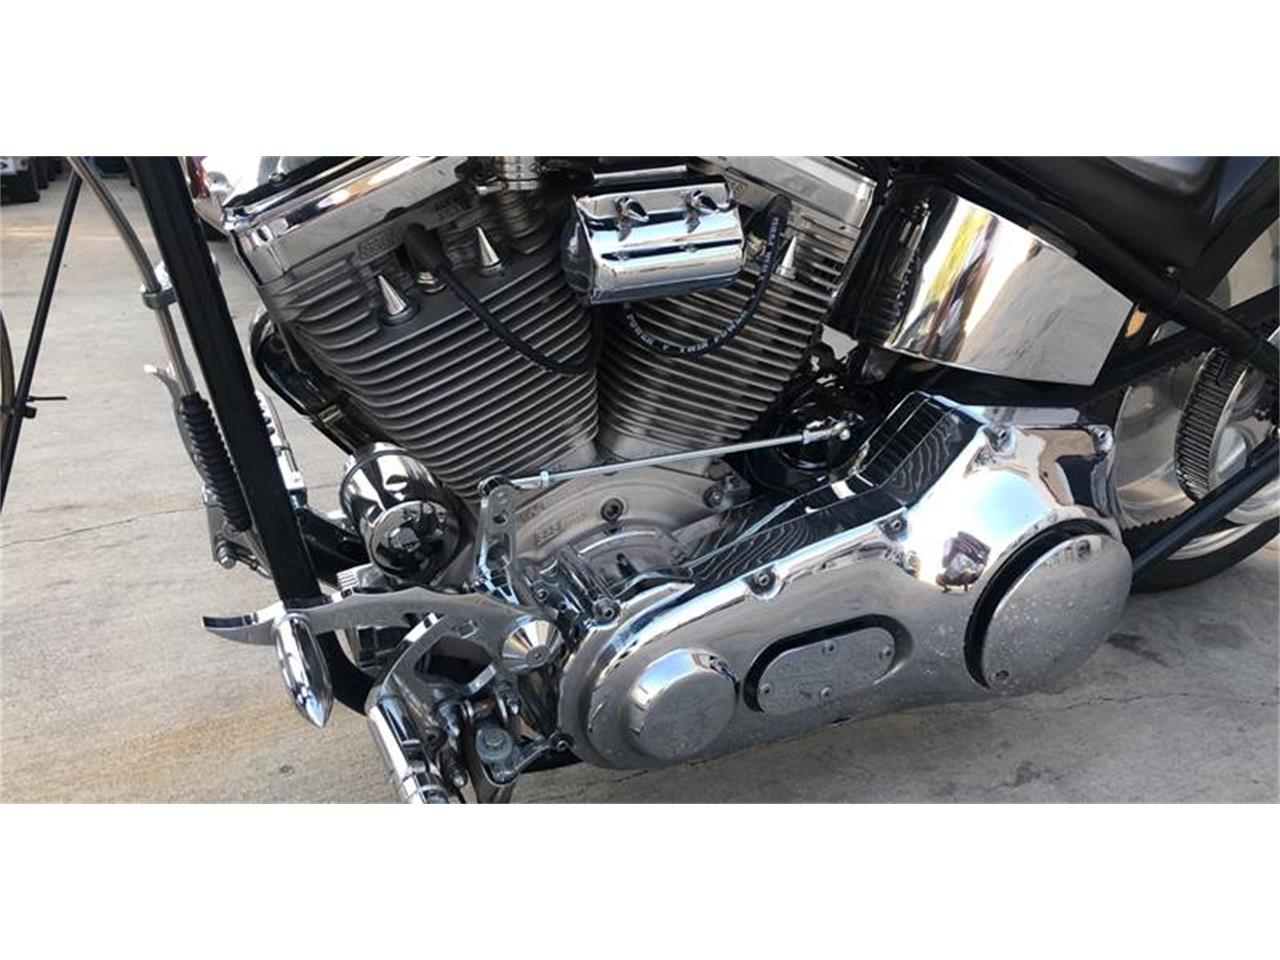 2002 Harley-Davidson Motorcycle for sale in Brea, CA – photo 6